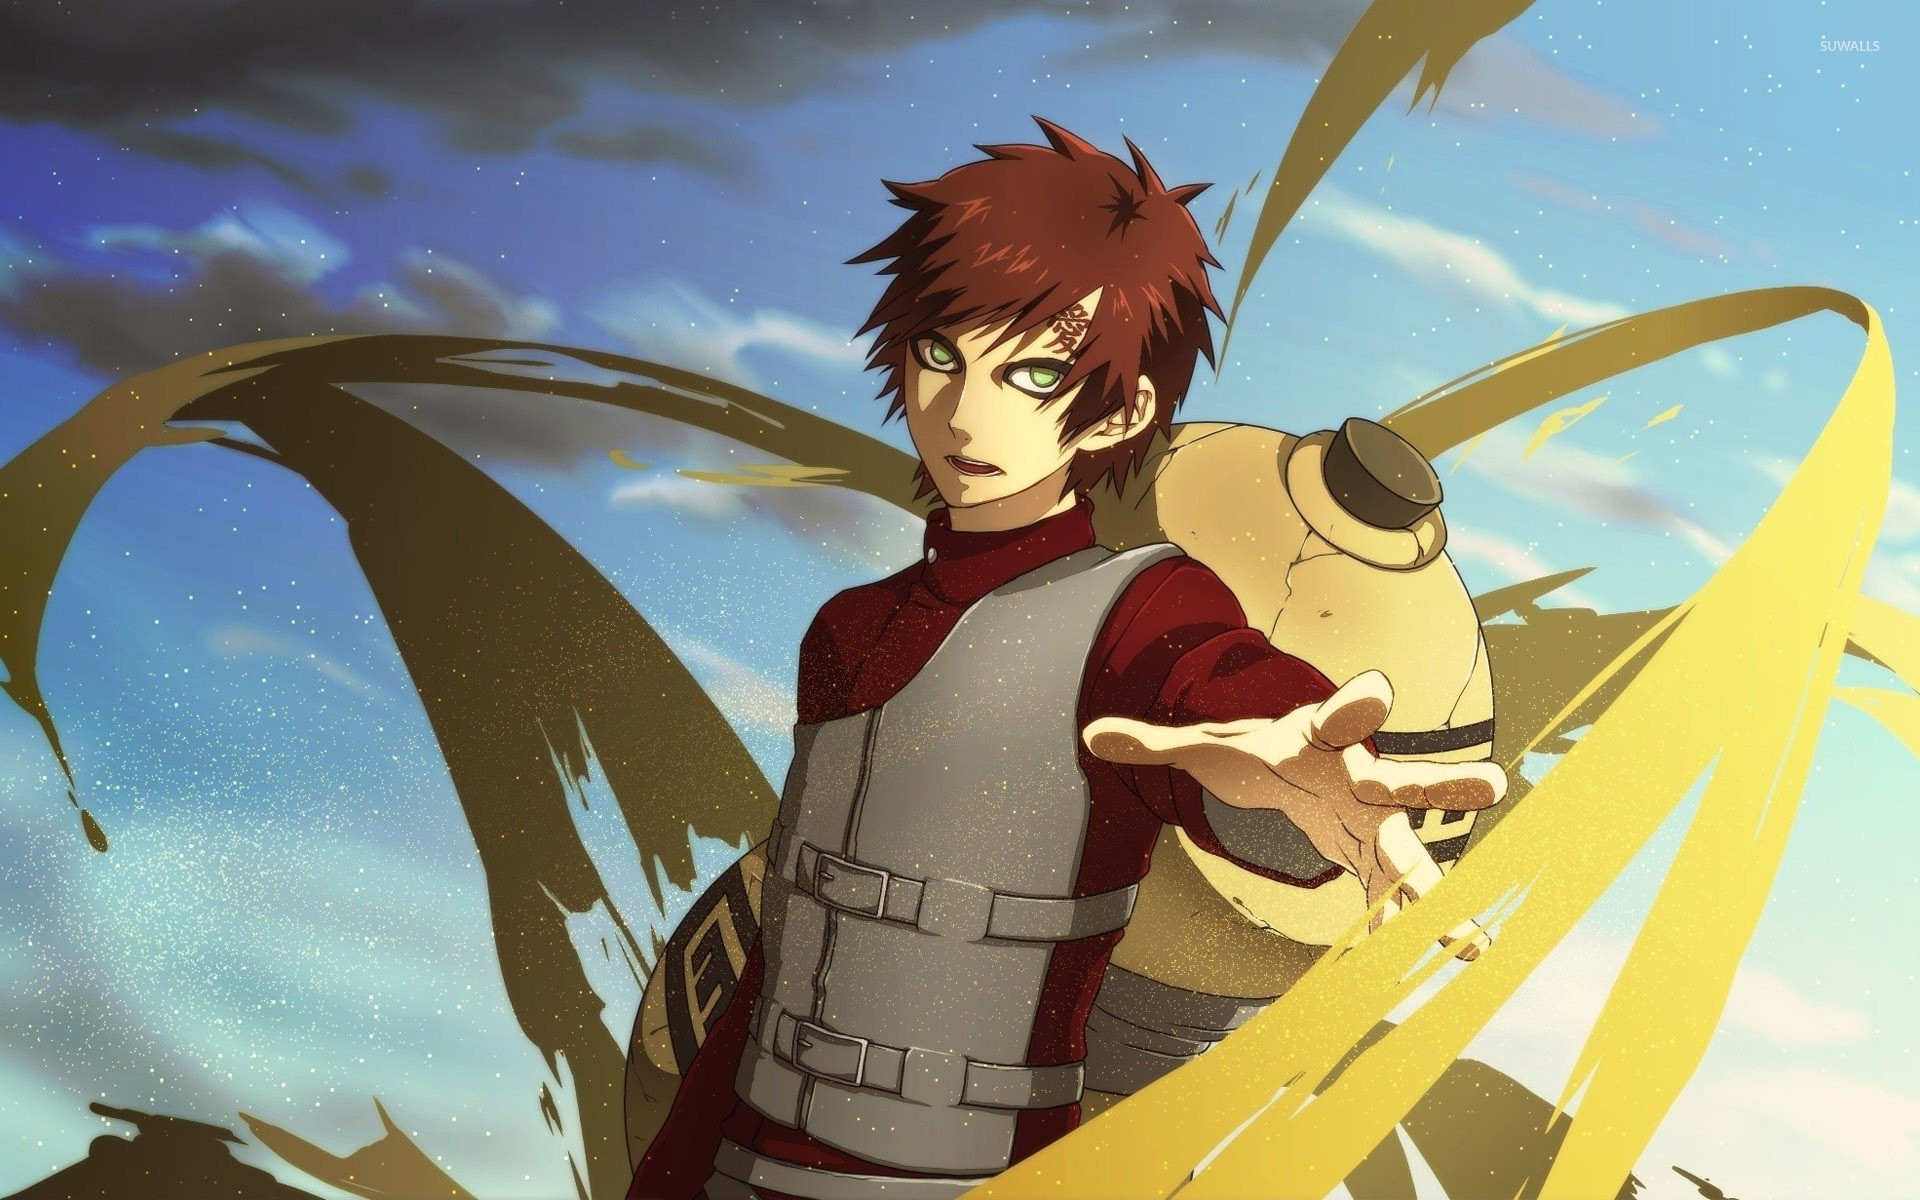 1920x1200 Gaara - Naruto [2] wallpaper